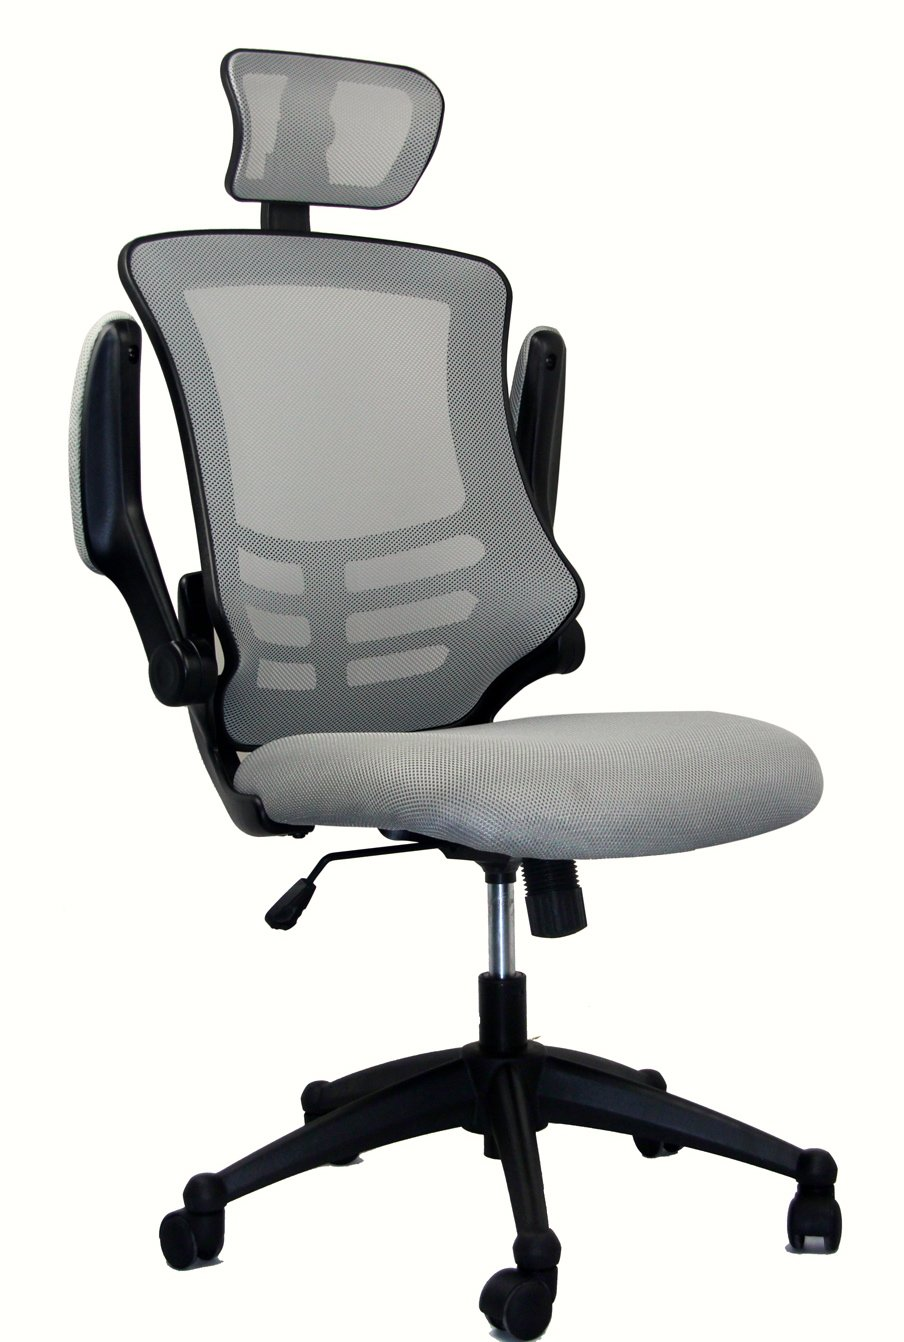 Techni Mobili Modern High Back Mesh Executive Chair With Headrest And Flip Up Arms. Color: Silver Grey